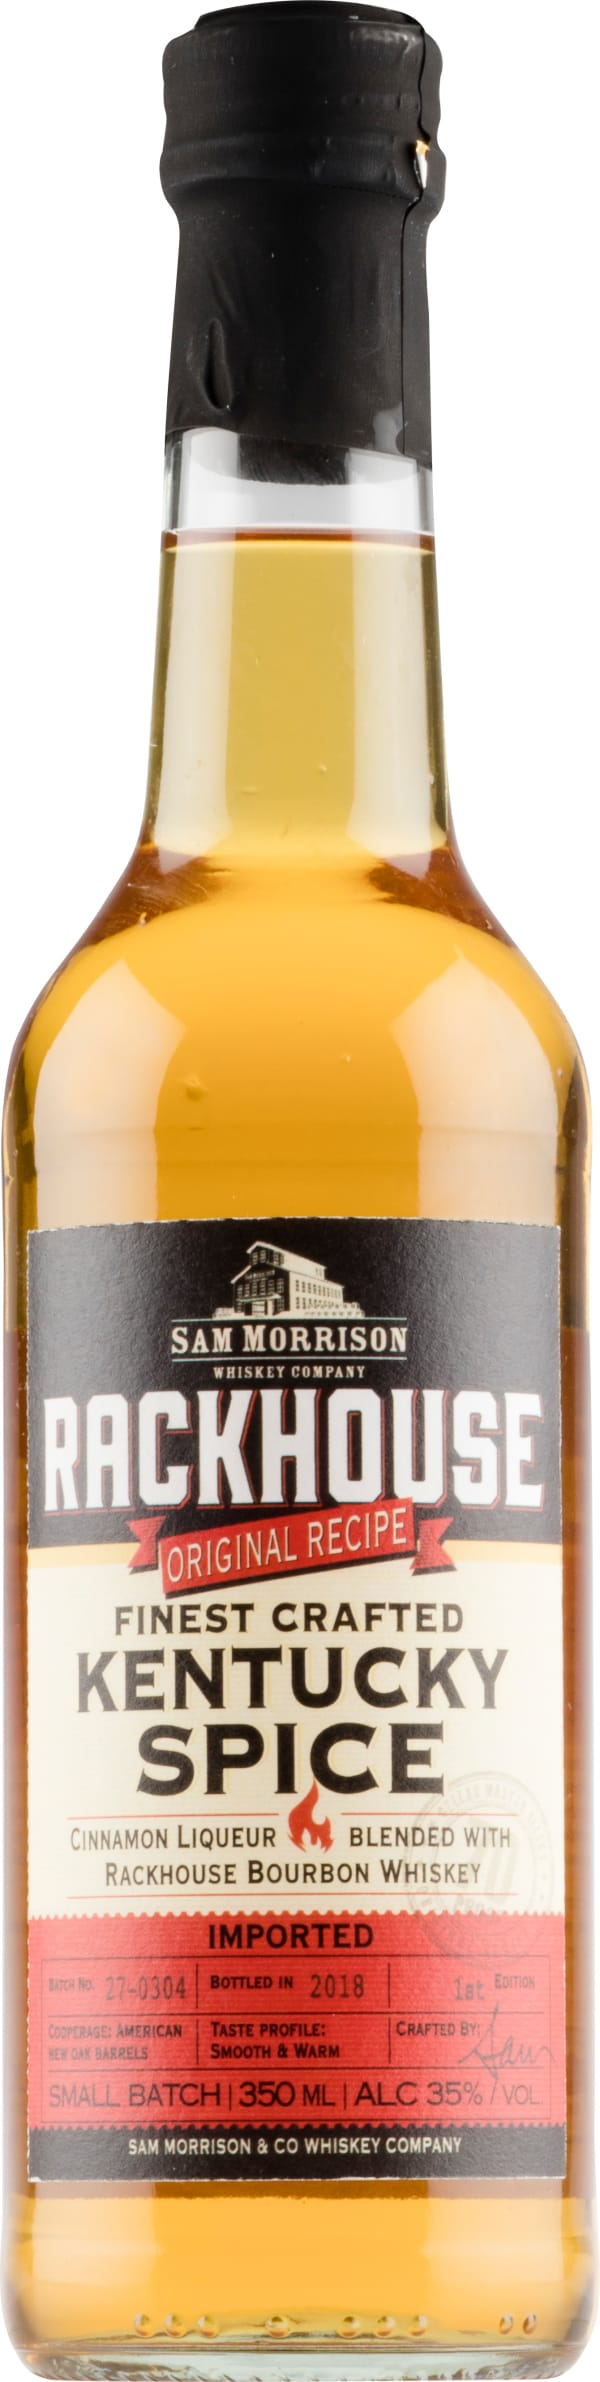 Rackhouse Finest Crafted Kentucky Spice